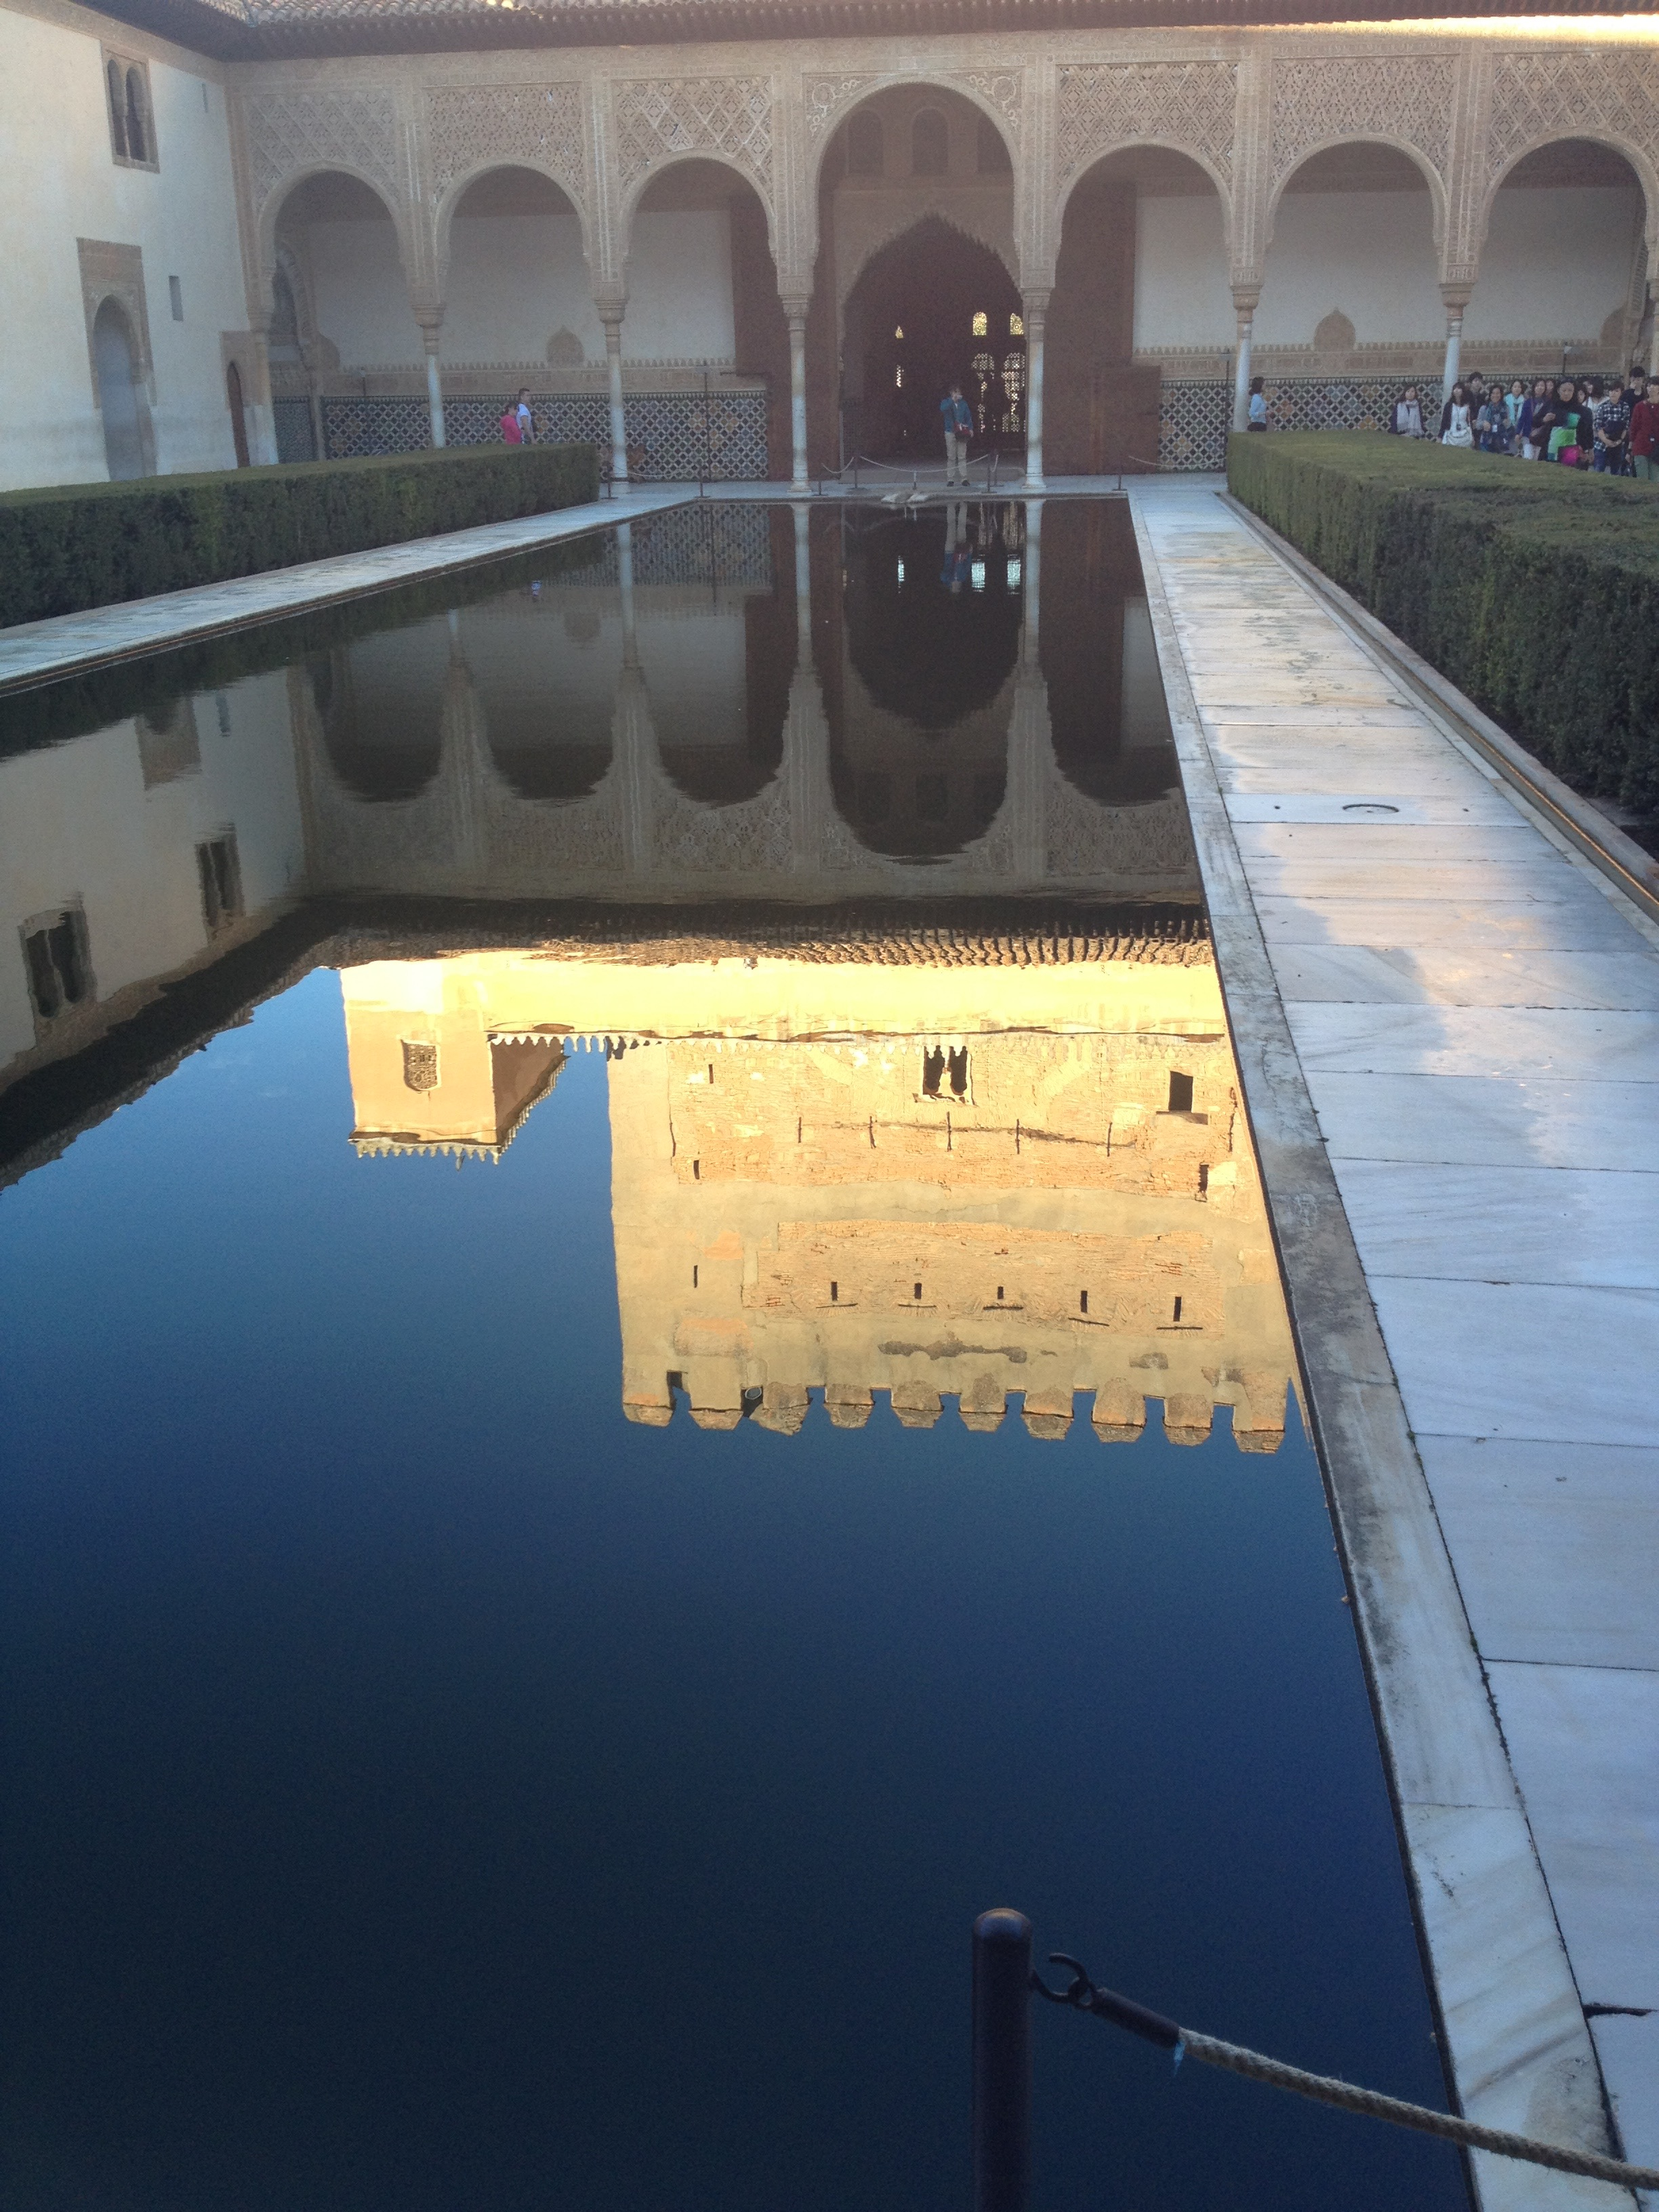 Reflections in the pools of the Alhambra.